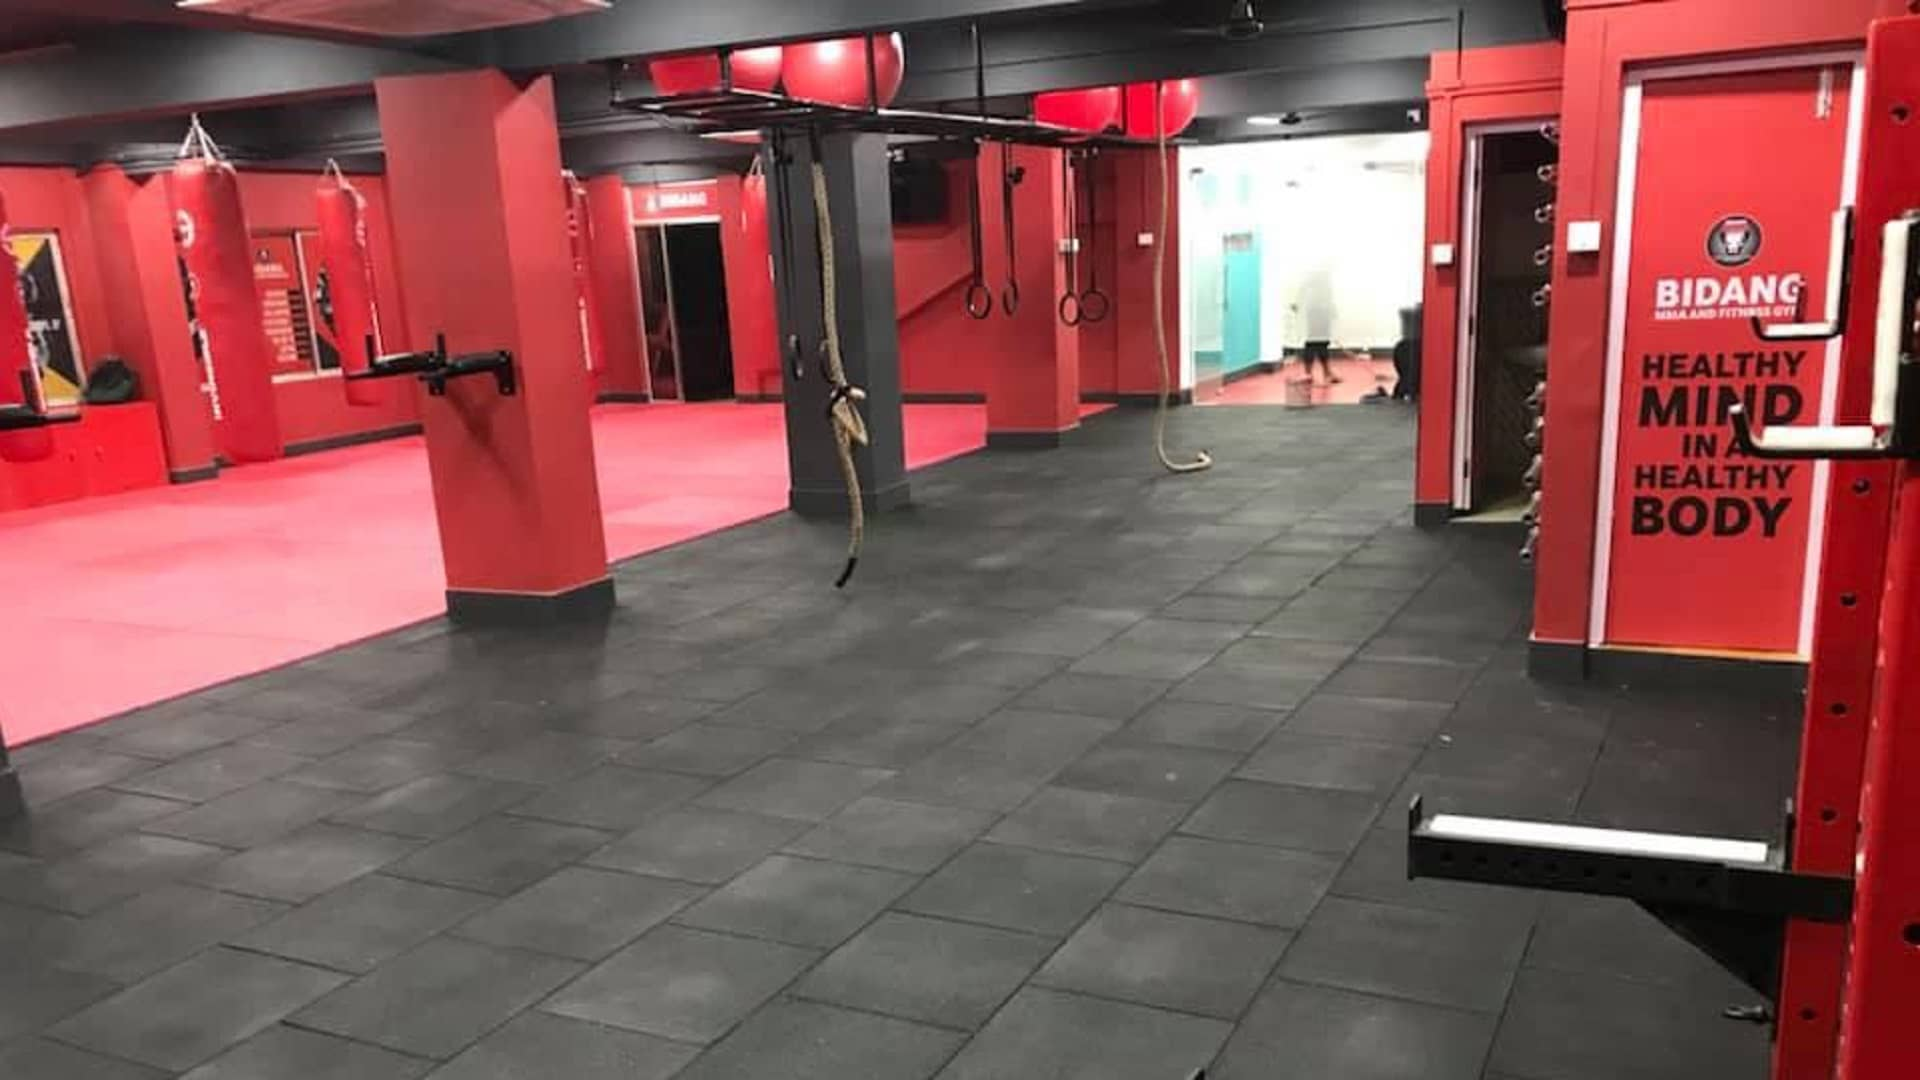 Bidang-MMA-and-Fitness-Gym-Guwahati-Reopening